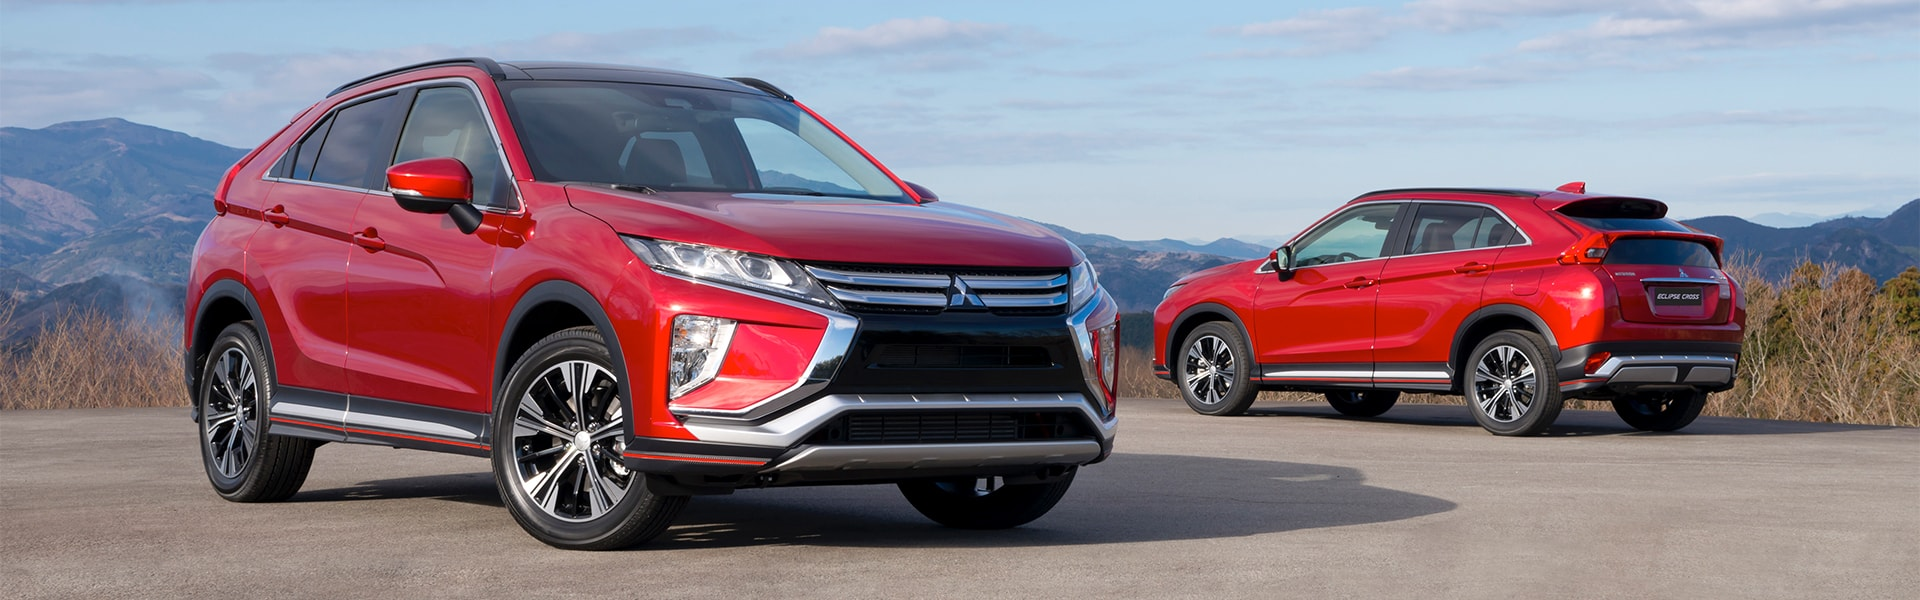 2018 mitsubishi eclipse cross. brilliant 2018 rally red 2018 mitsubishi eclipse cross in sunlight with mitsubishi eclipse cross m